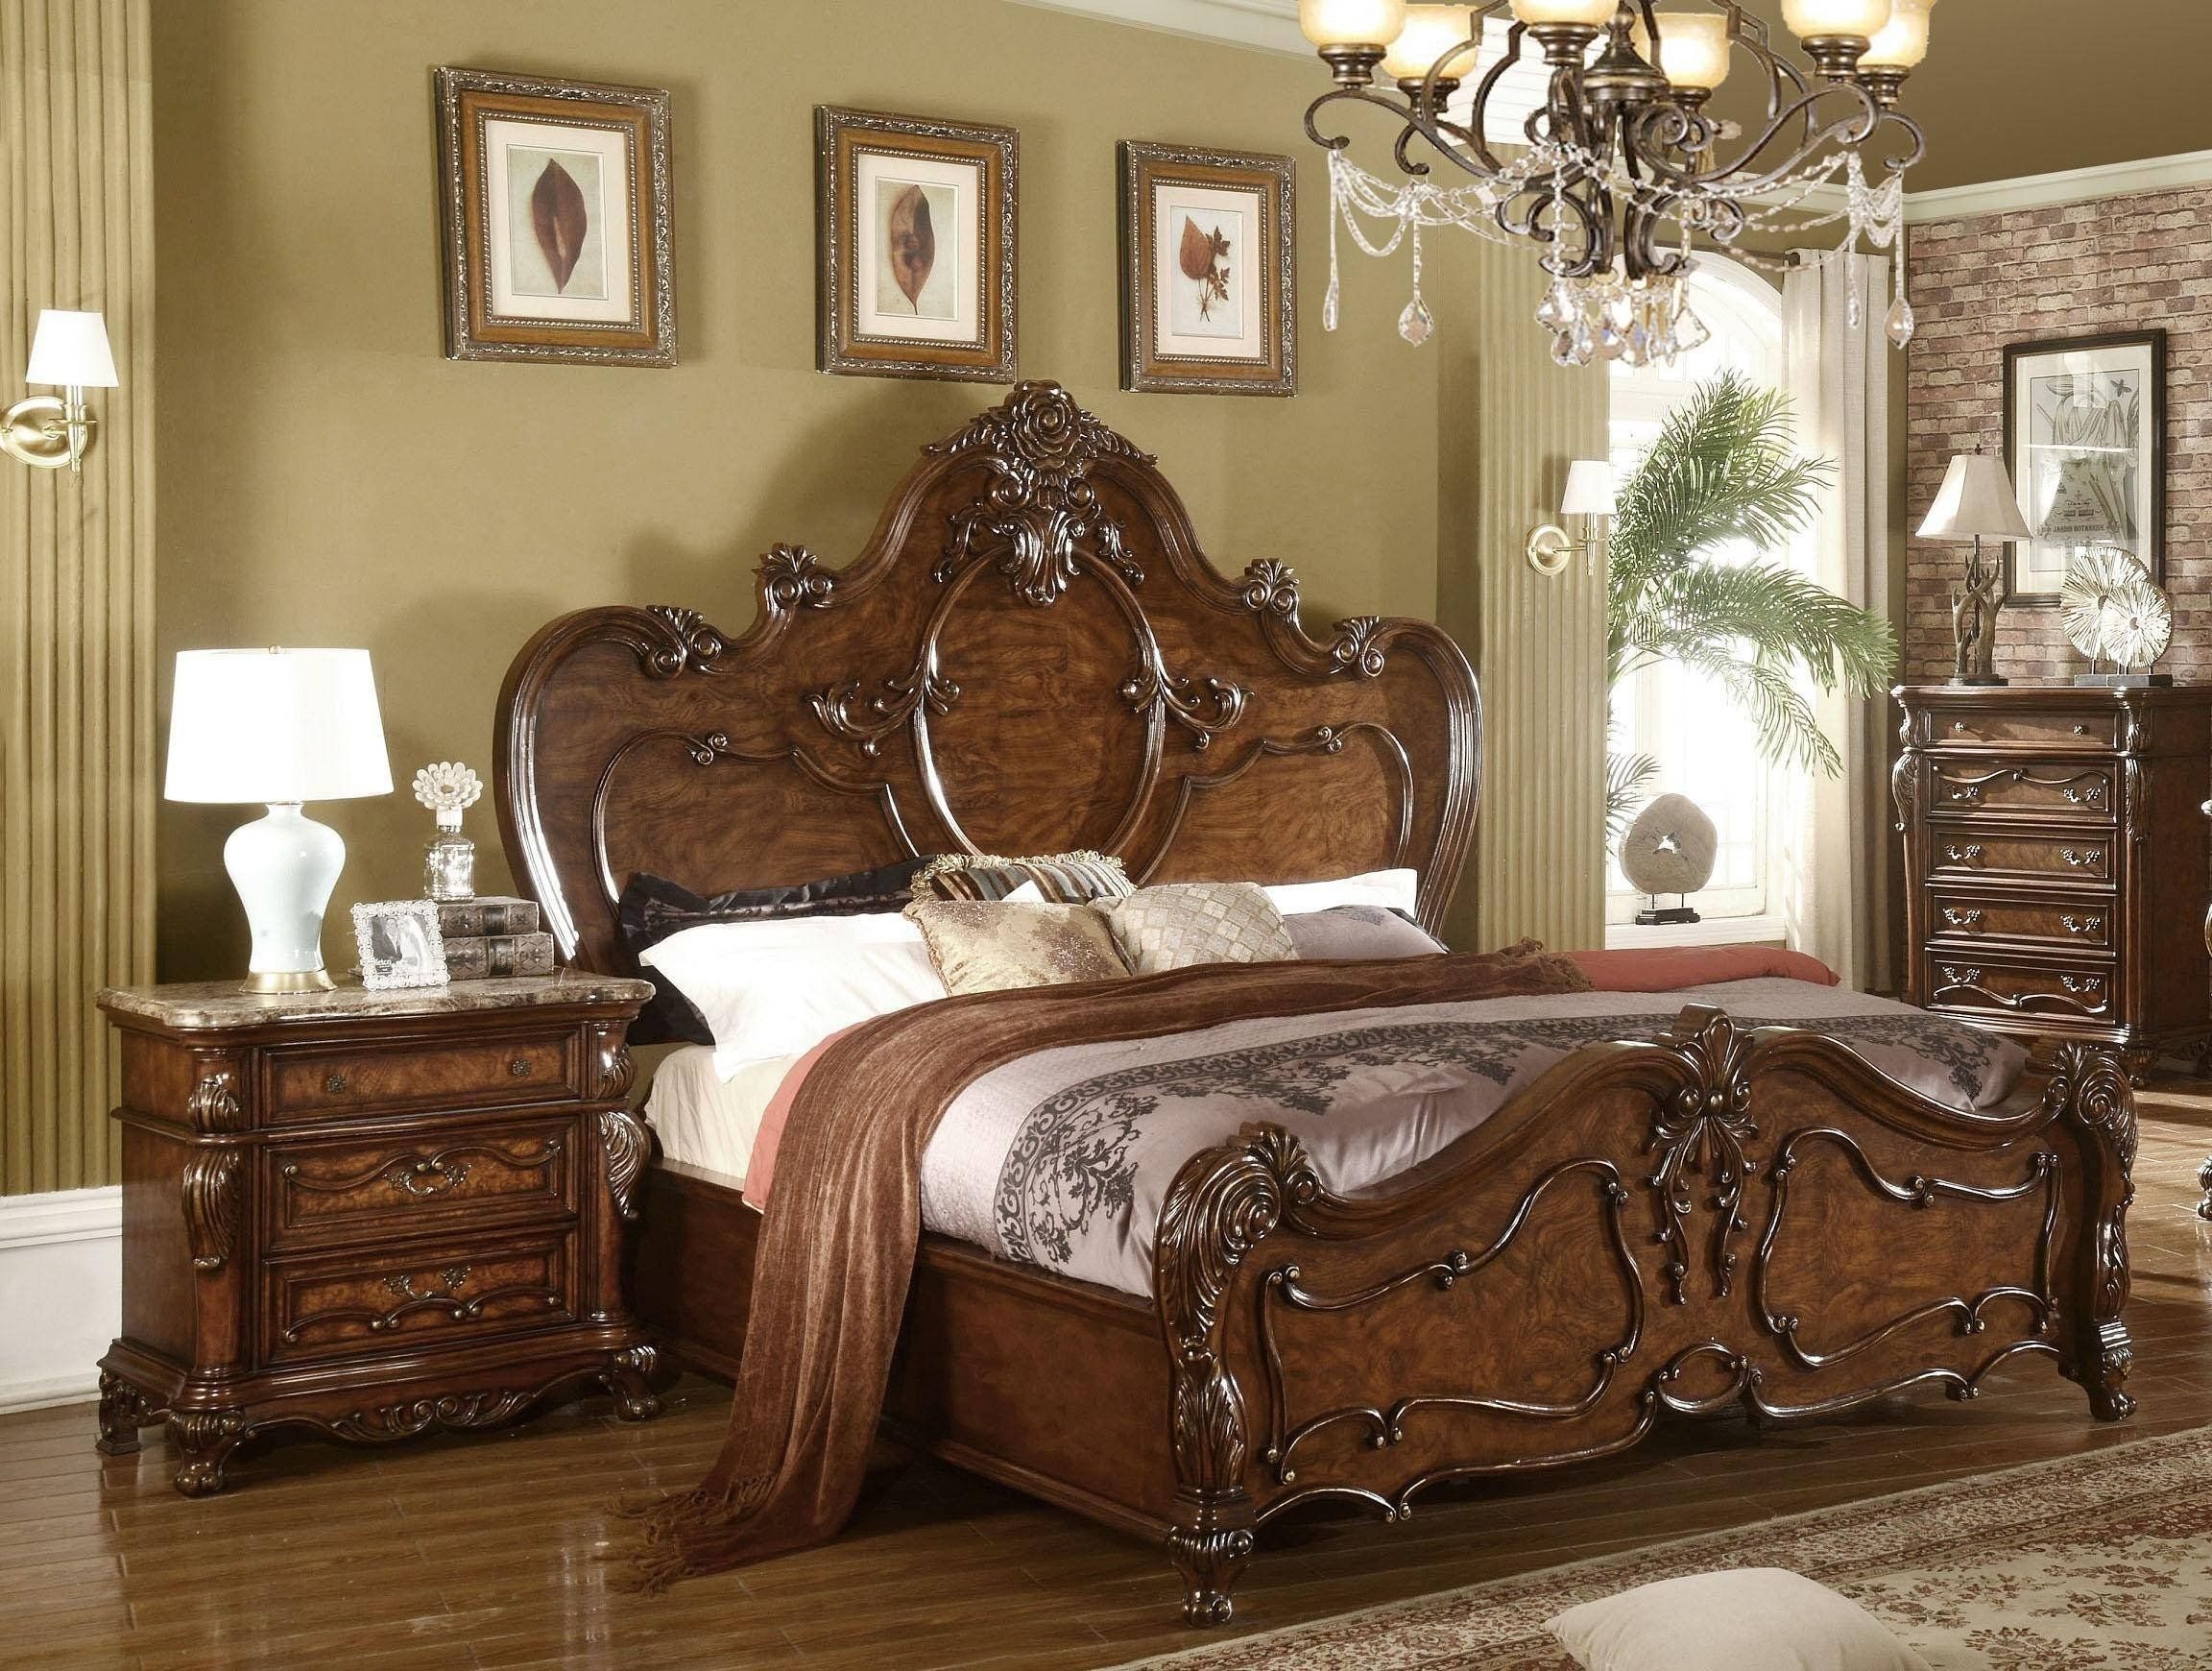 King Size Bedroom Set for Sale Mcferran B5 Traditional Cherry